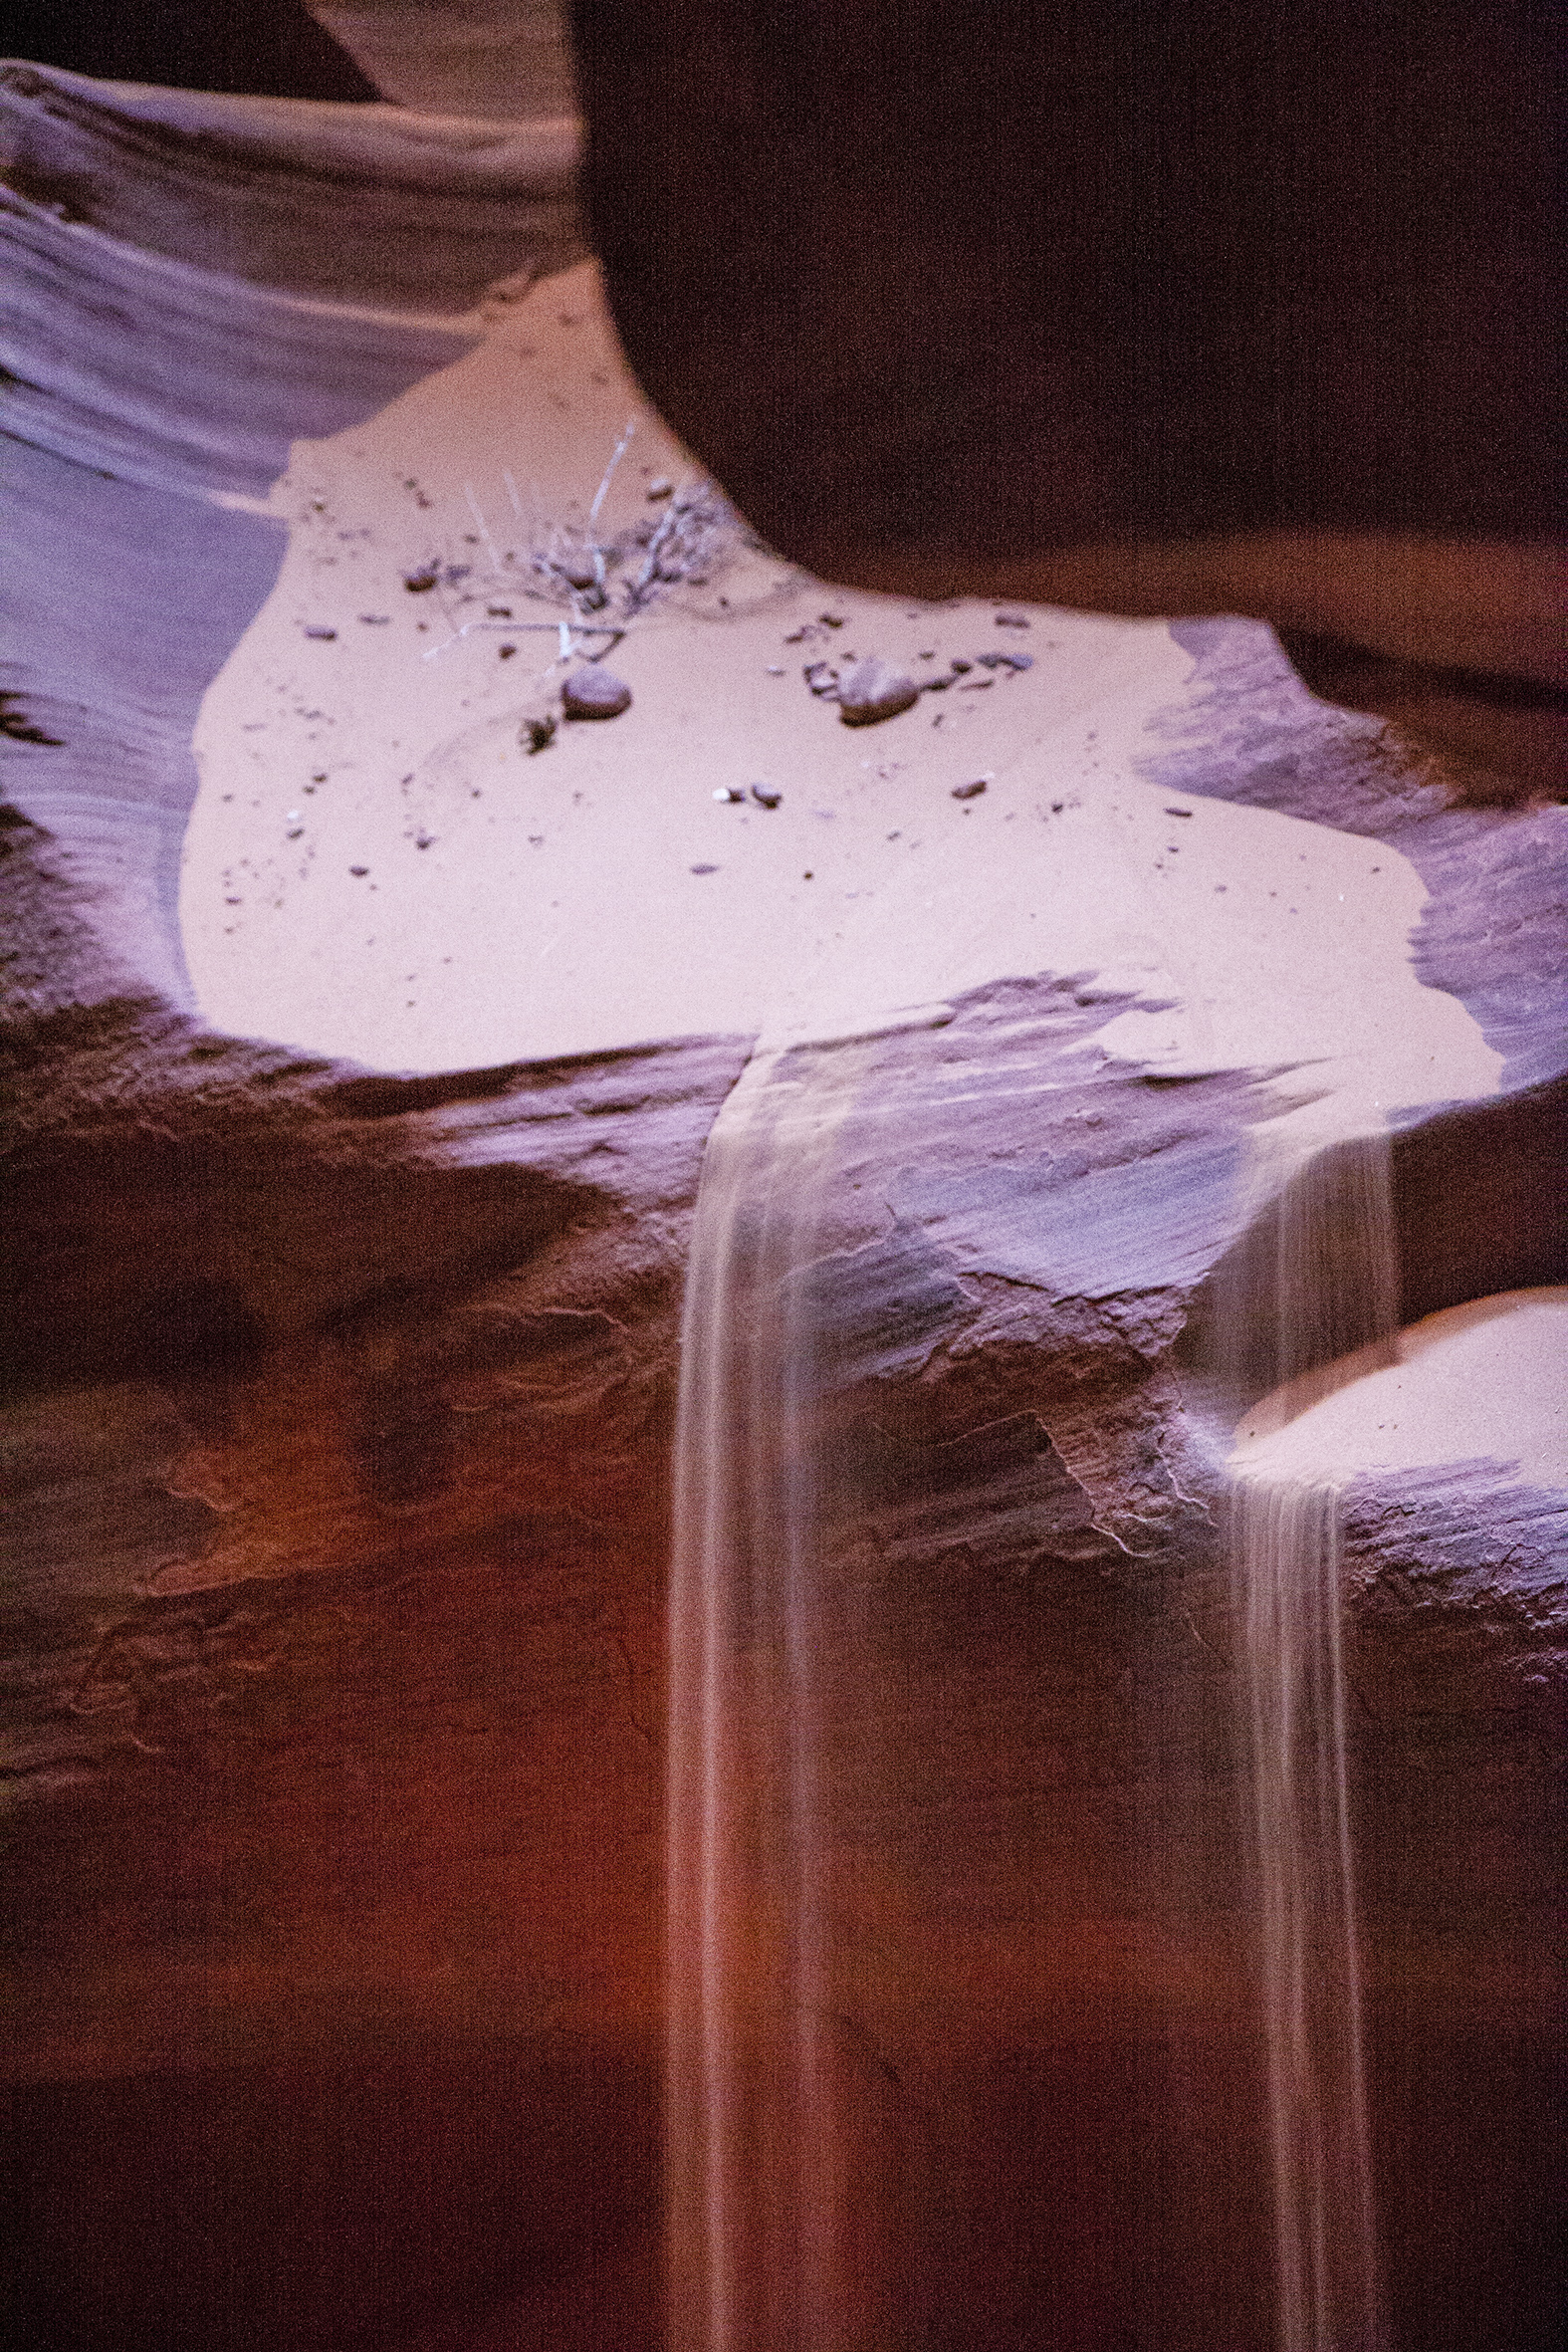 naturaliste-antelope-canyon-reserve-navajo-usa-ouest-2012-marie-colette-becker-06